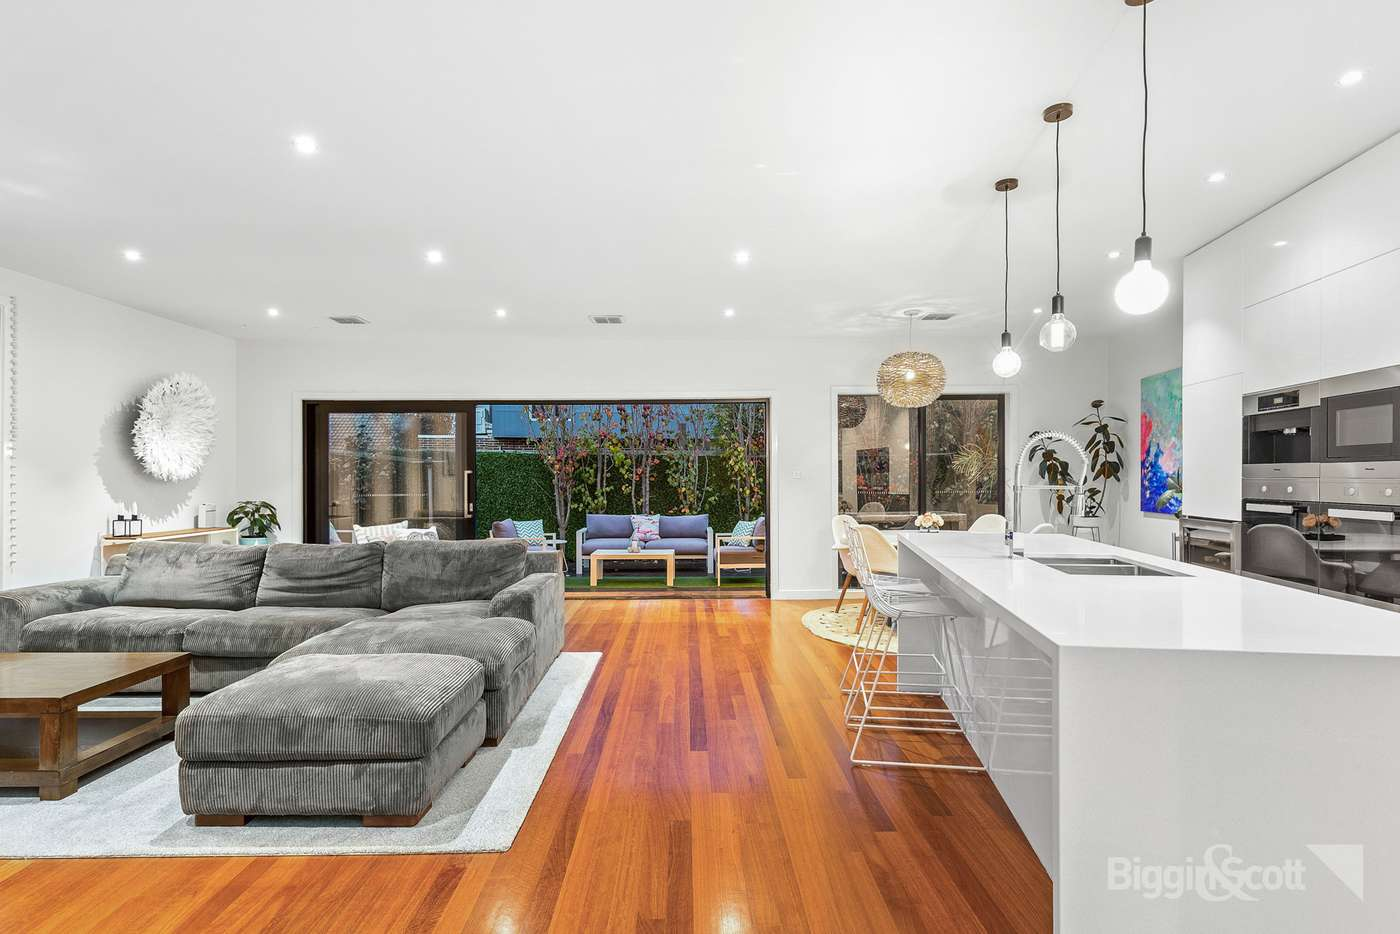 Main view of Homely house listing, 2/40 Anzac Crescent, Williamstown VIC 3016